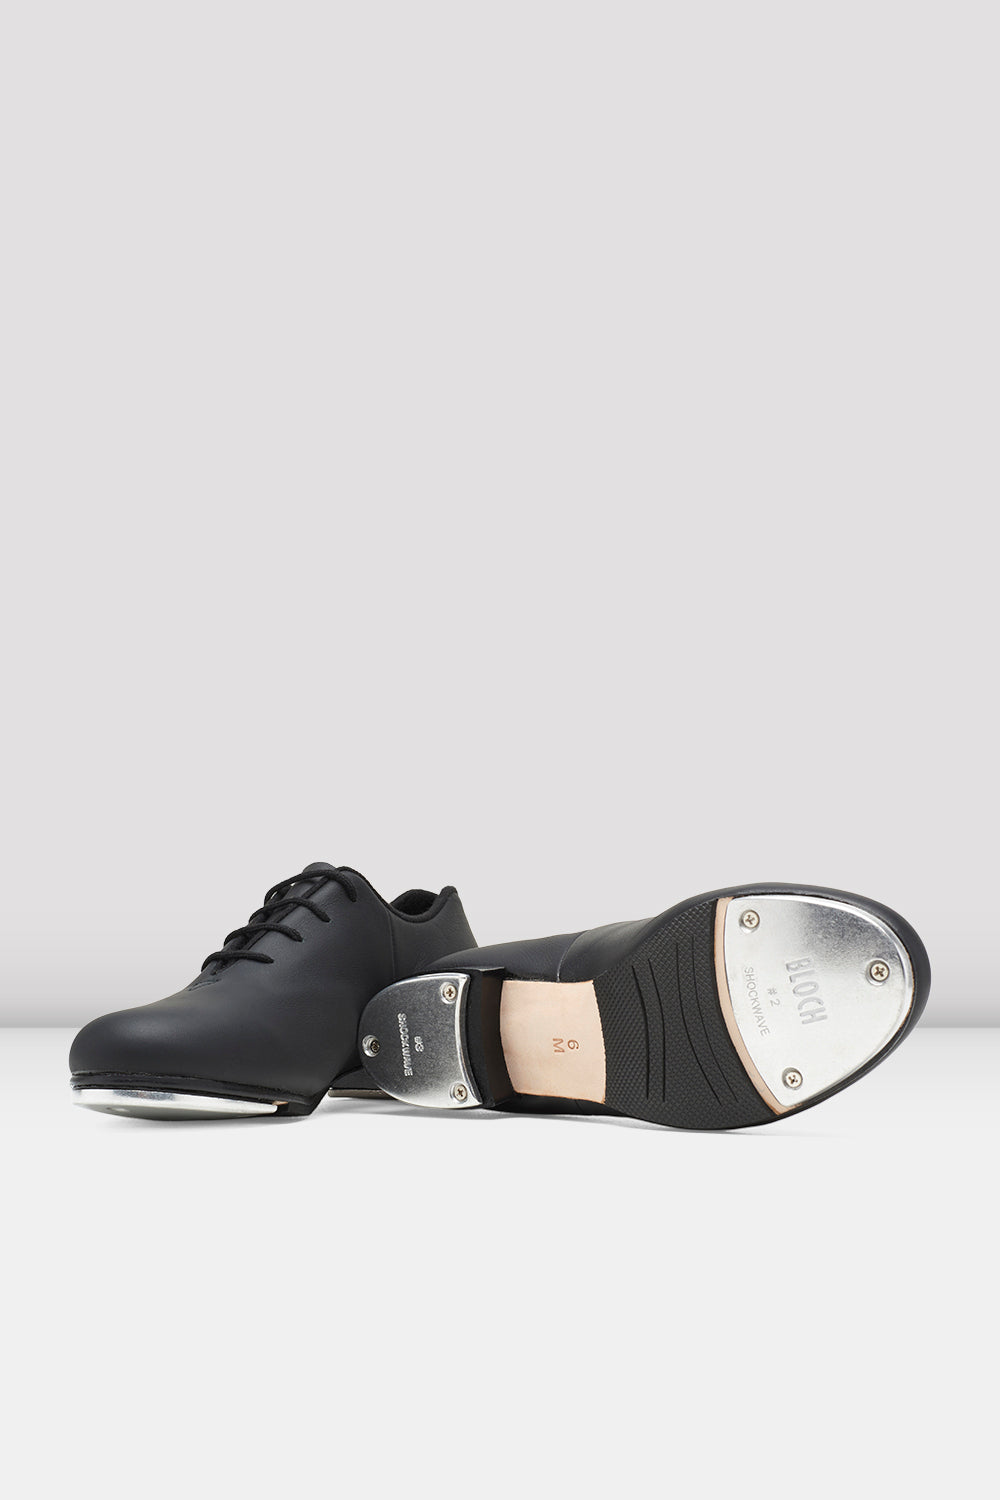 Childrens Audeo Jazz Tap Leather Tap